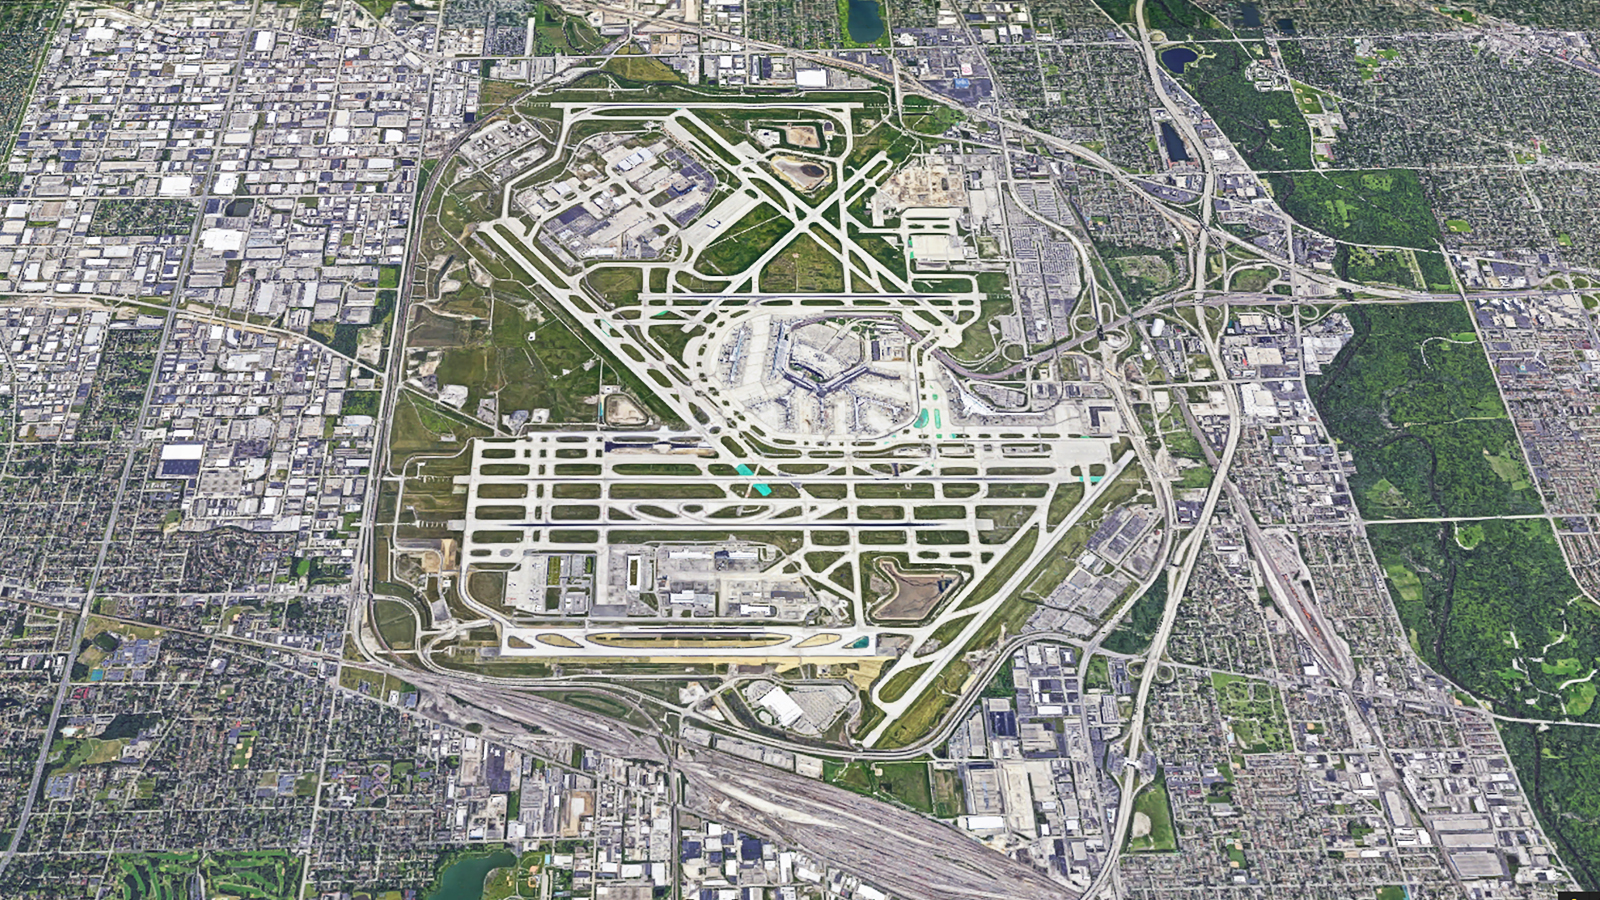 Airport Modernization Program Environmental Impact Statement (EIS)